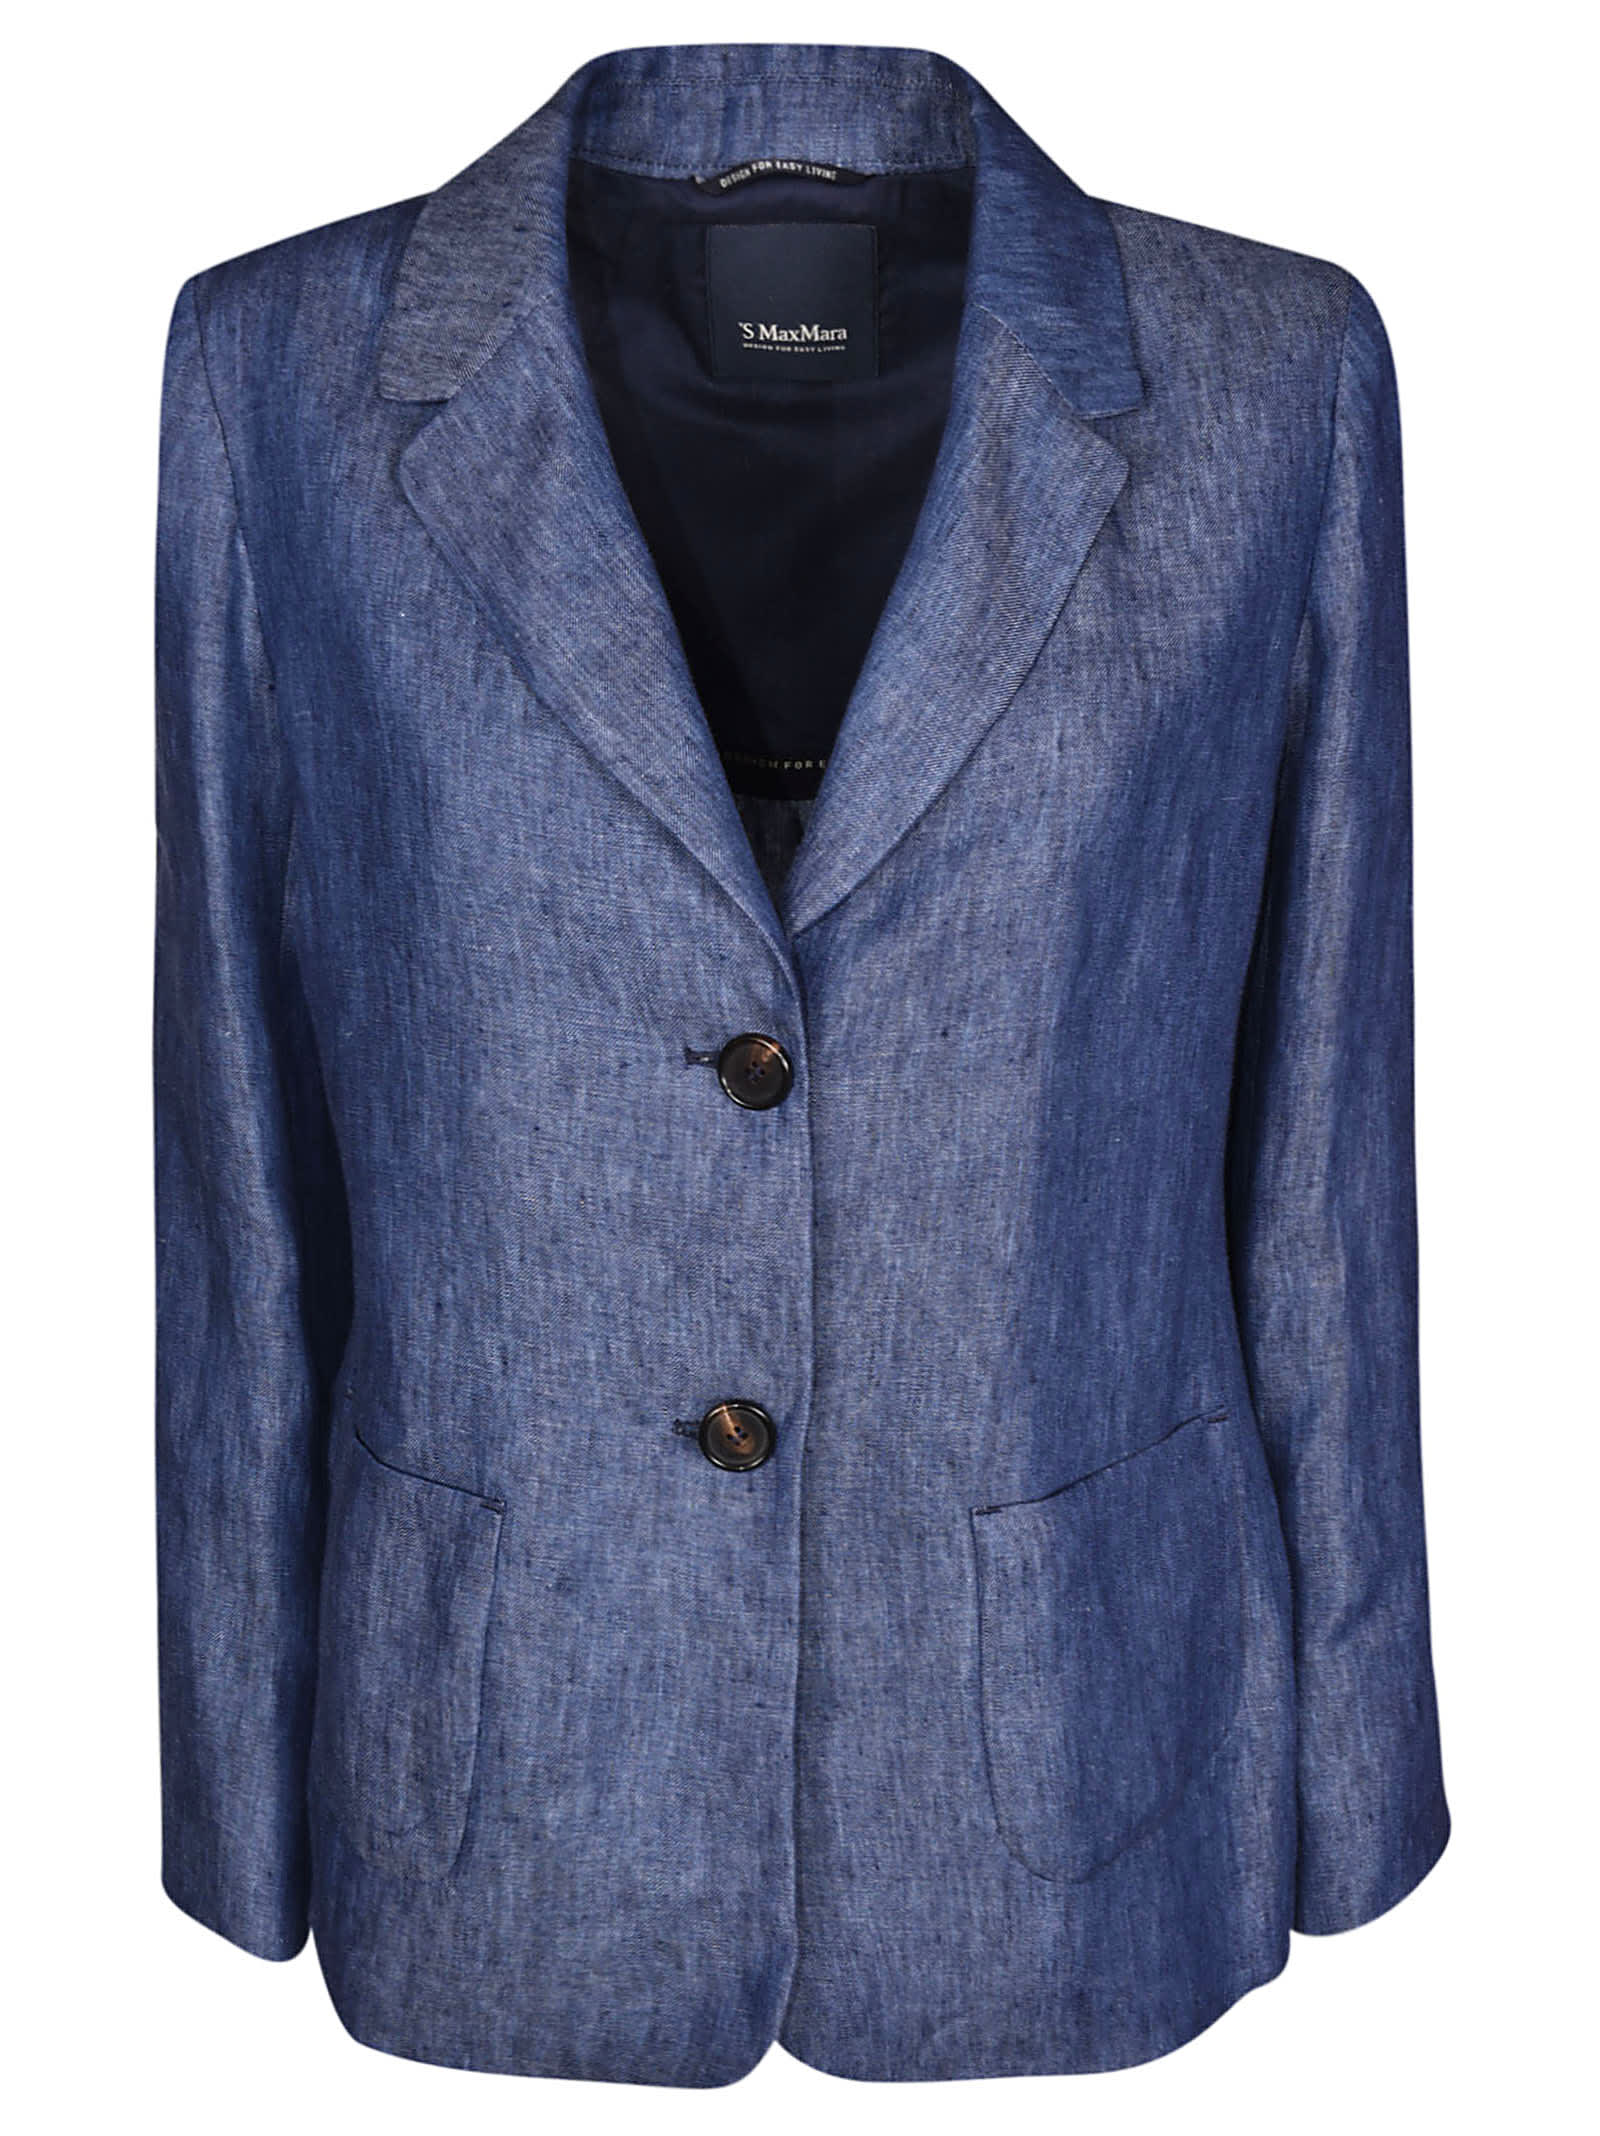 S Max Mara Here is The Cube Single Breasted Jacket